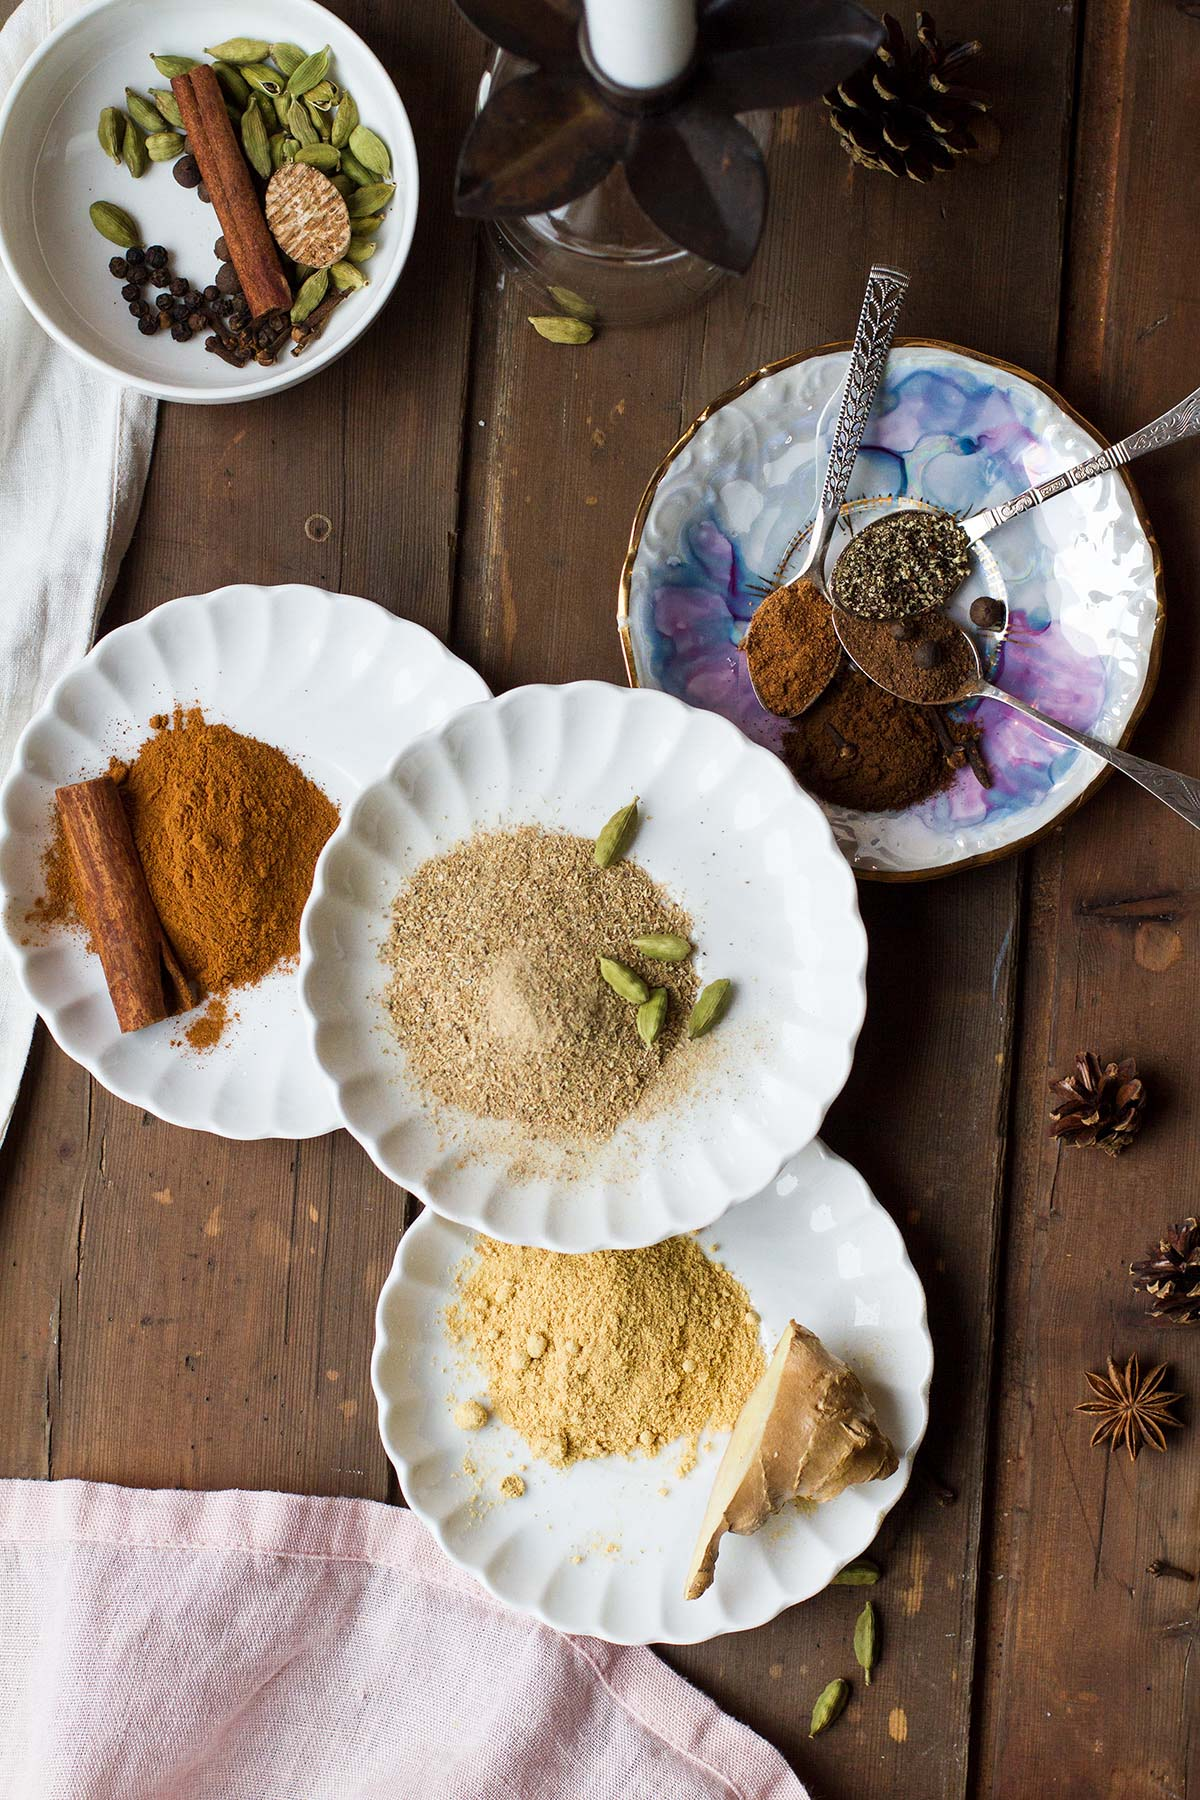 4 plates with different spices to make chai.